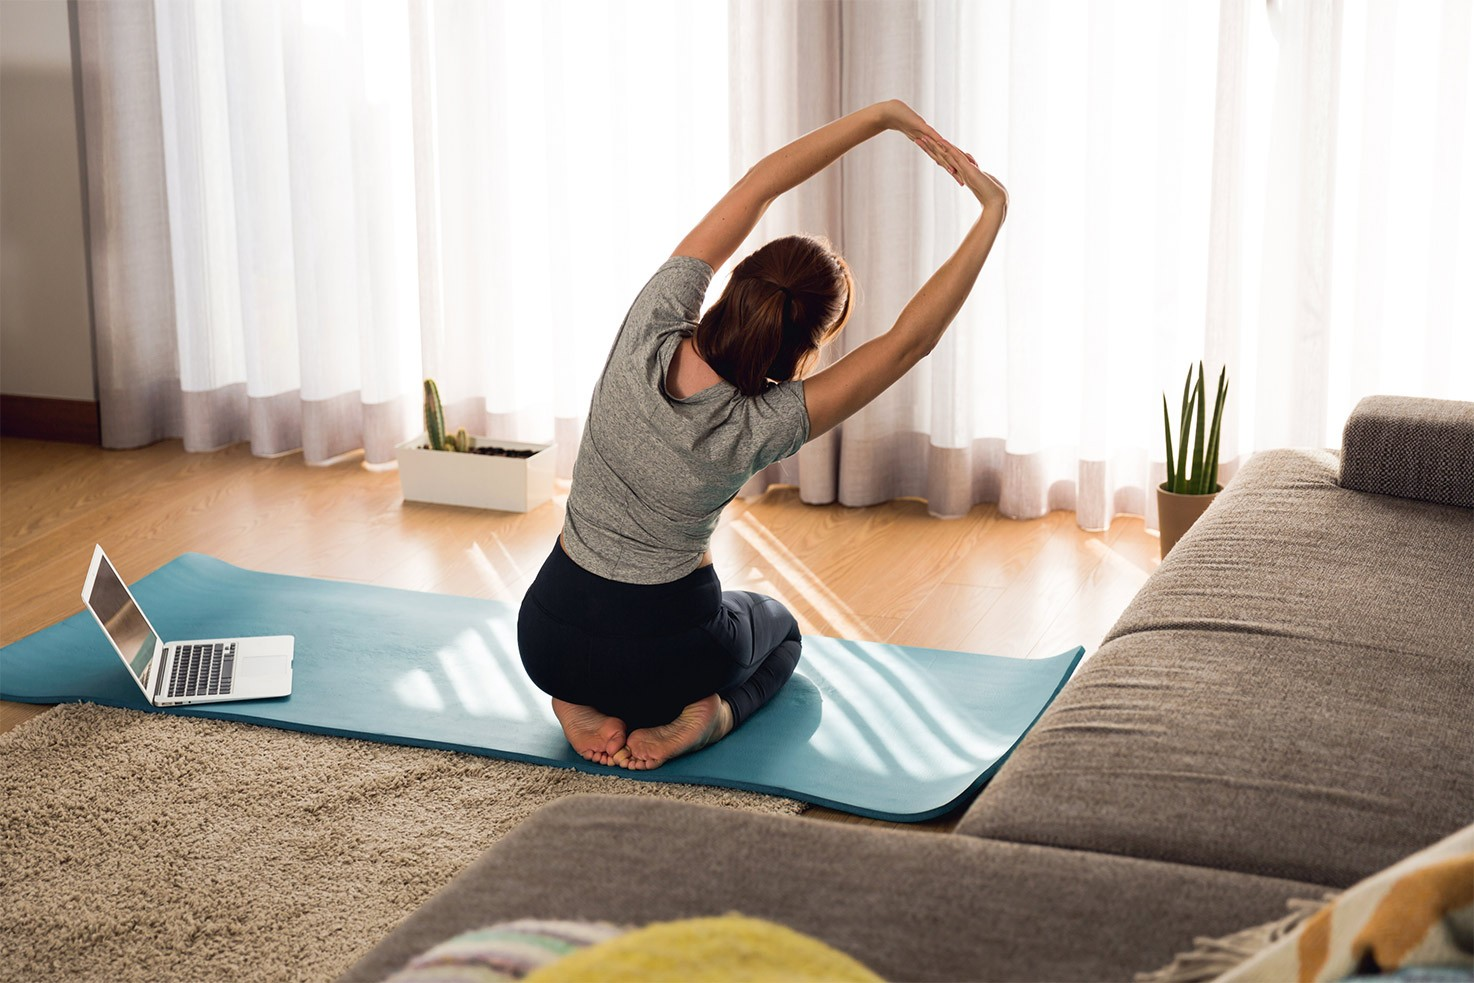 The woman is exercising at home | Hurry The Food Up